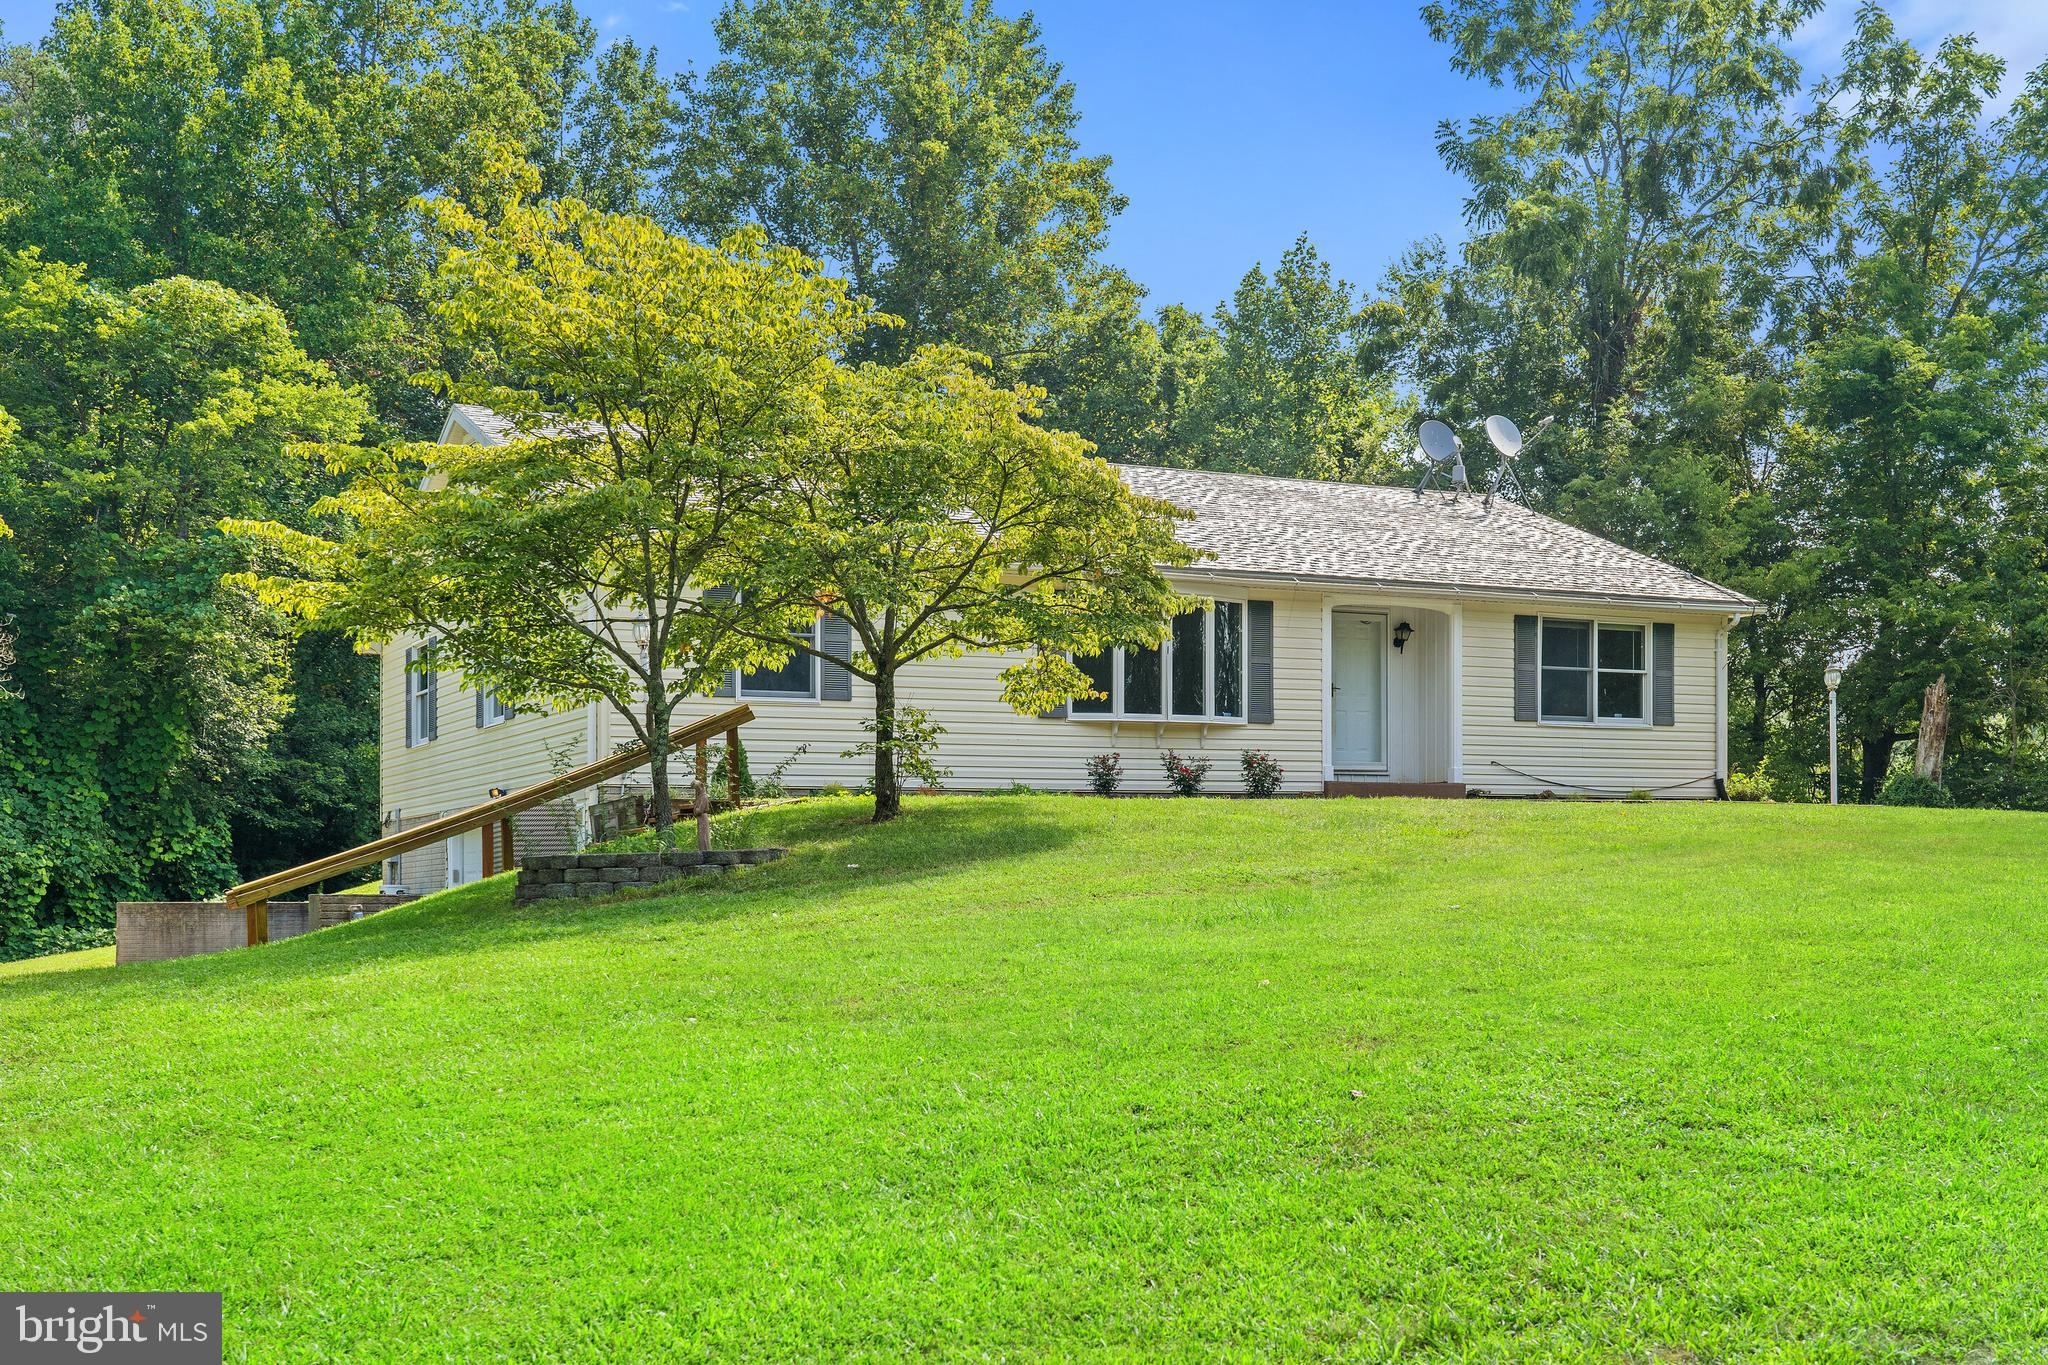 Tucked away on a secluded lot, this hidden gem is ready for its next owners!  Over 3200 finished sqf